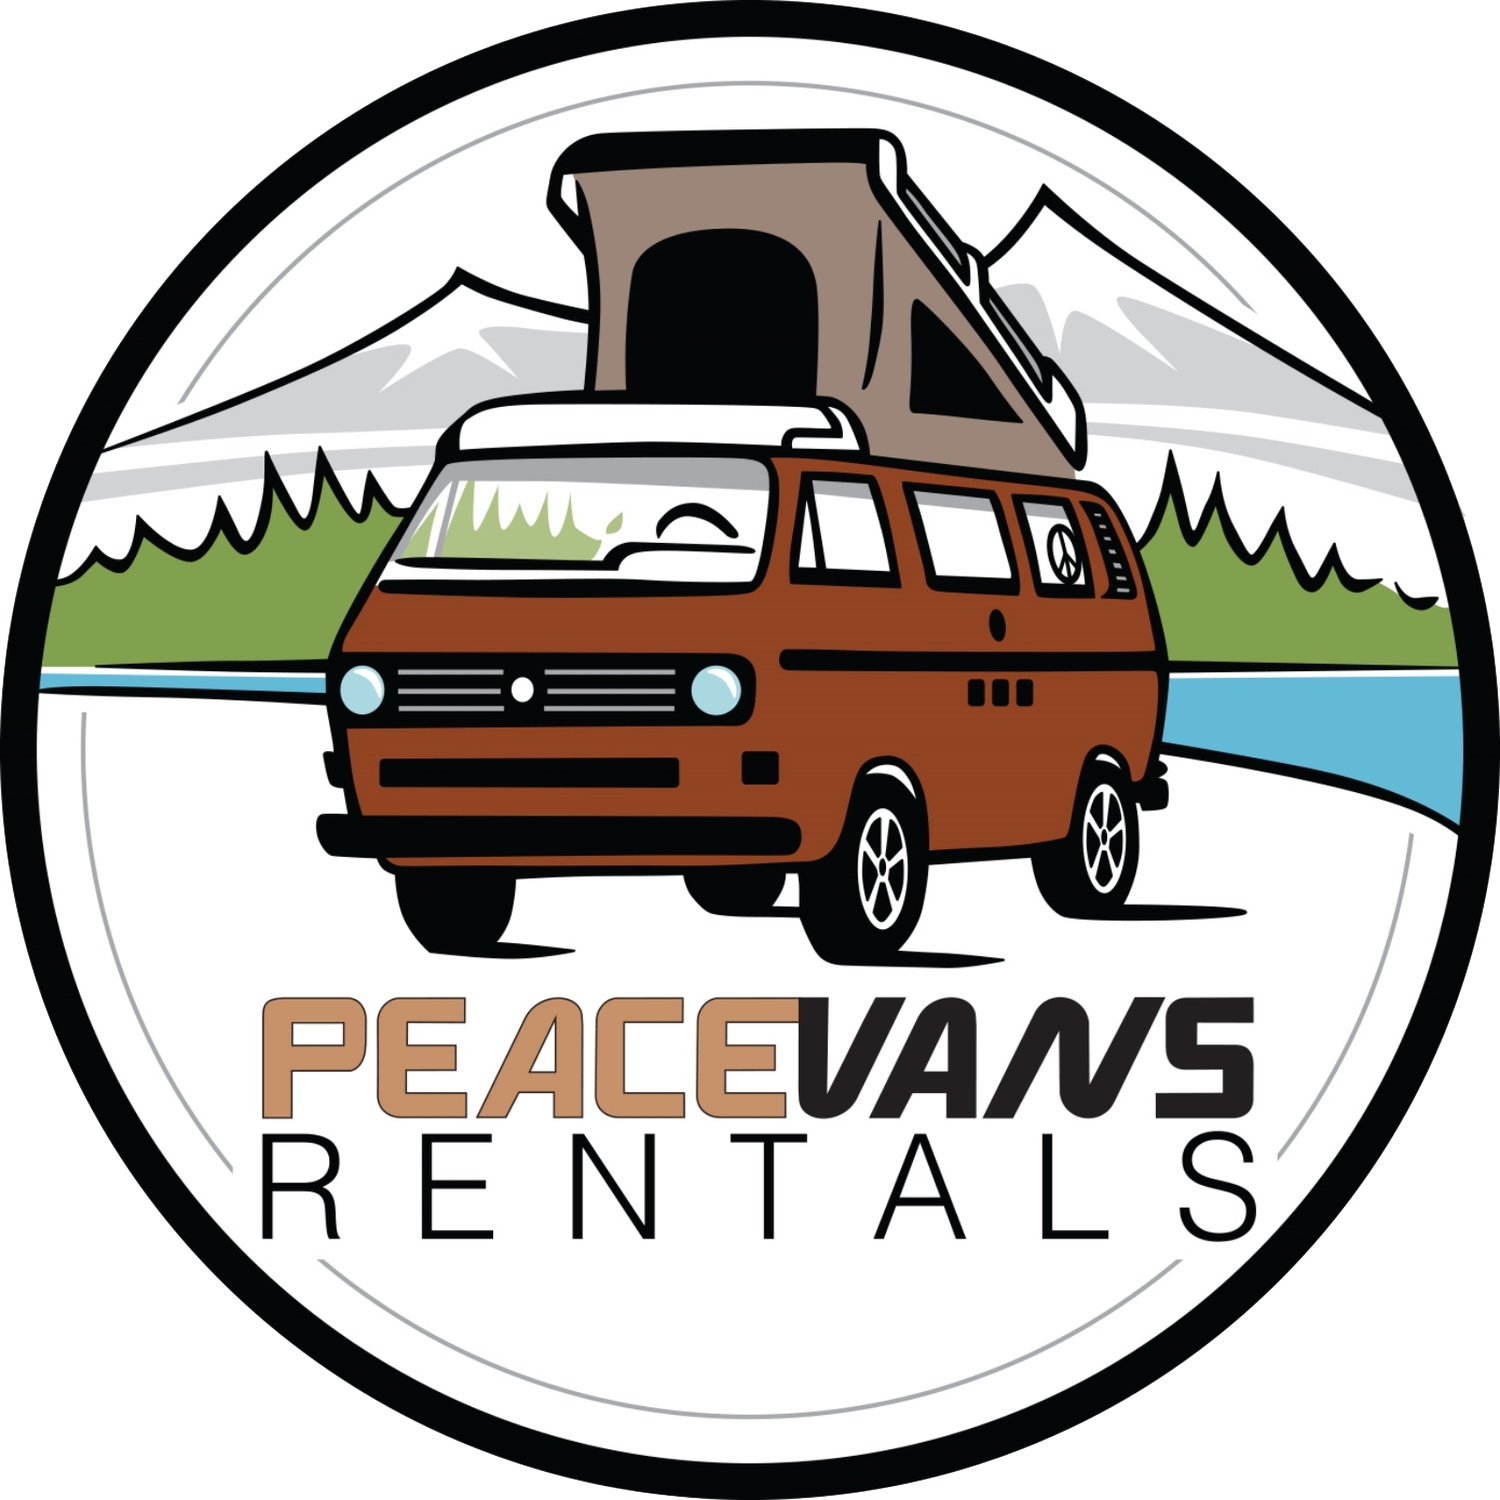 Vw camper van rental. Minivan clipart mini bus